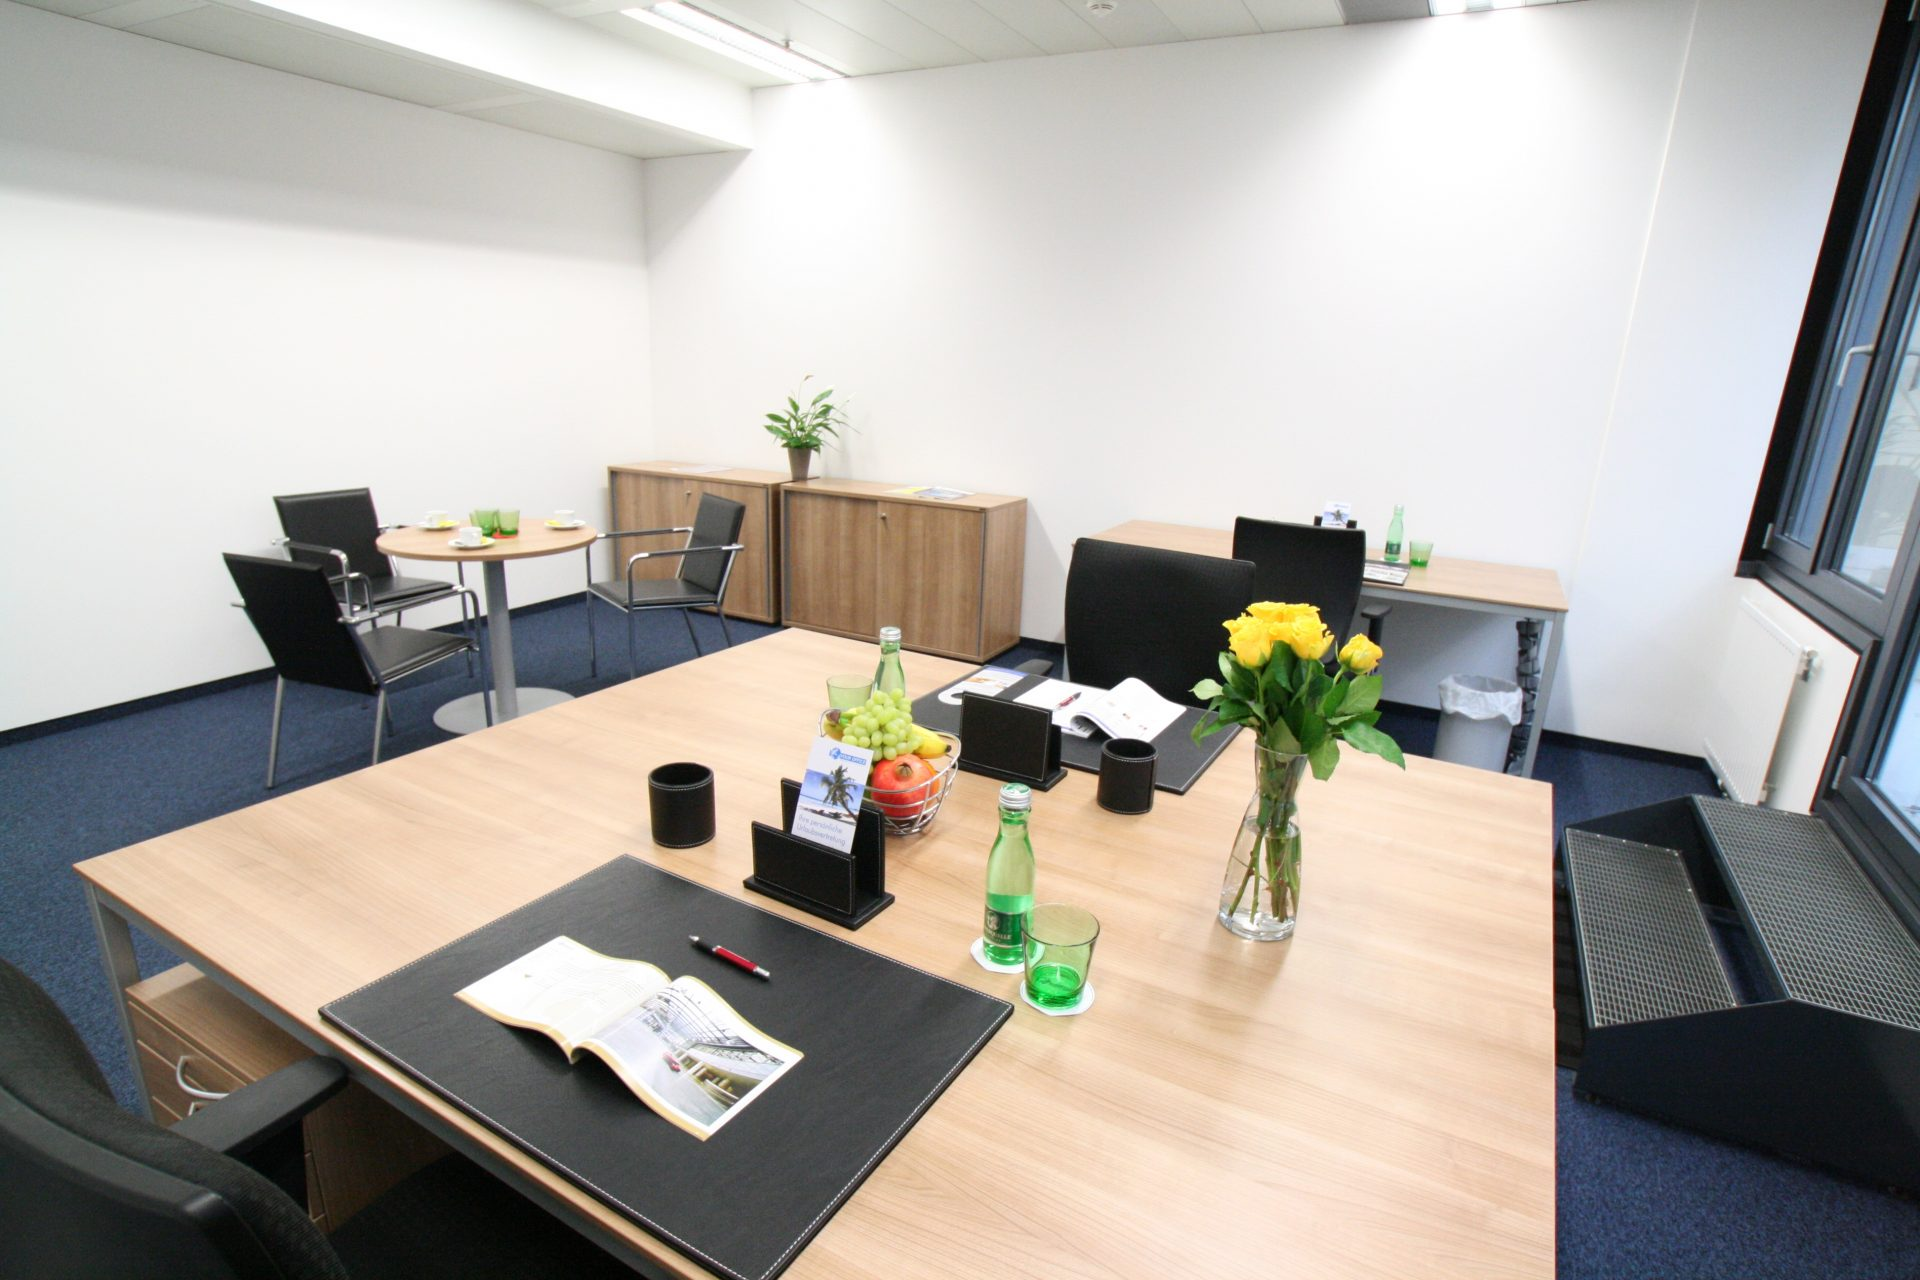 Office Space, Virual Office and Meeting Room in Vienna